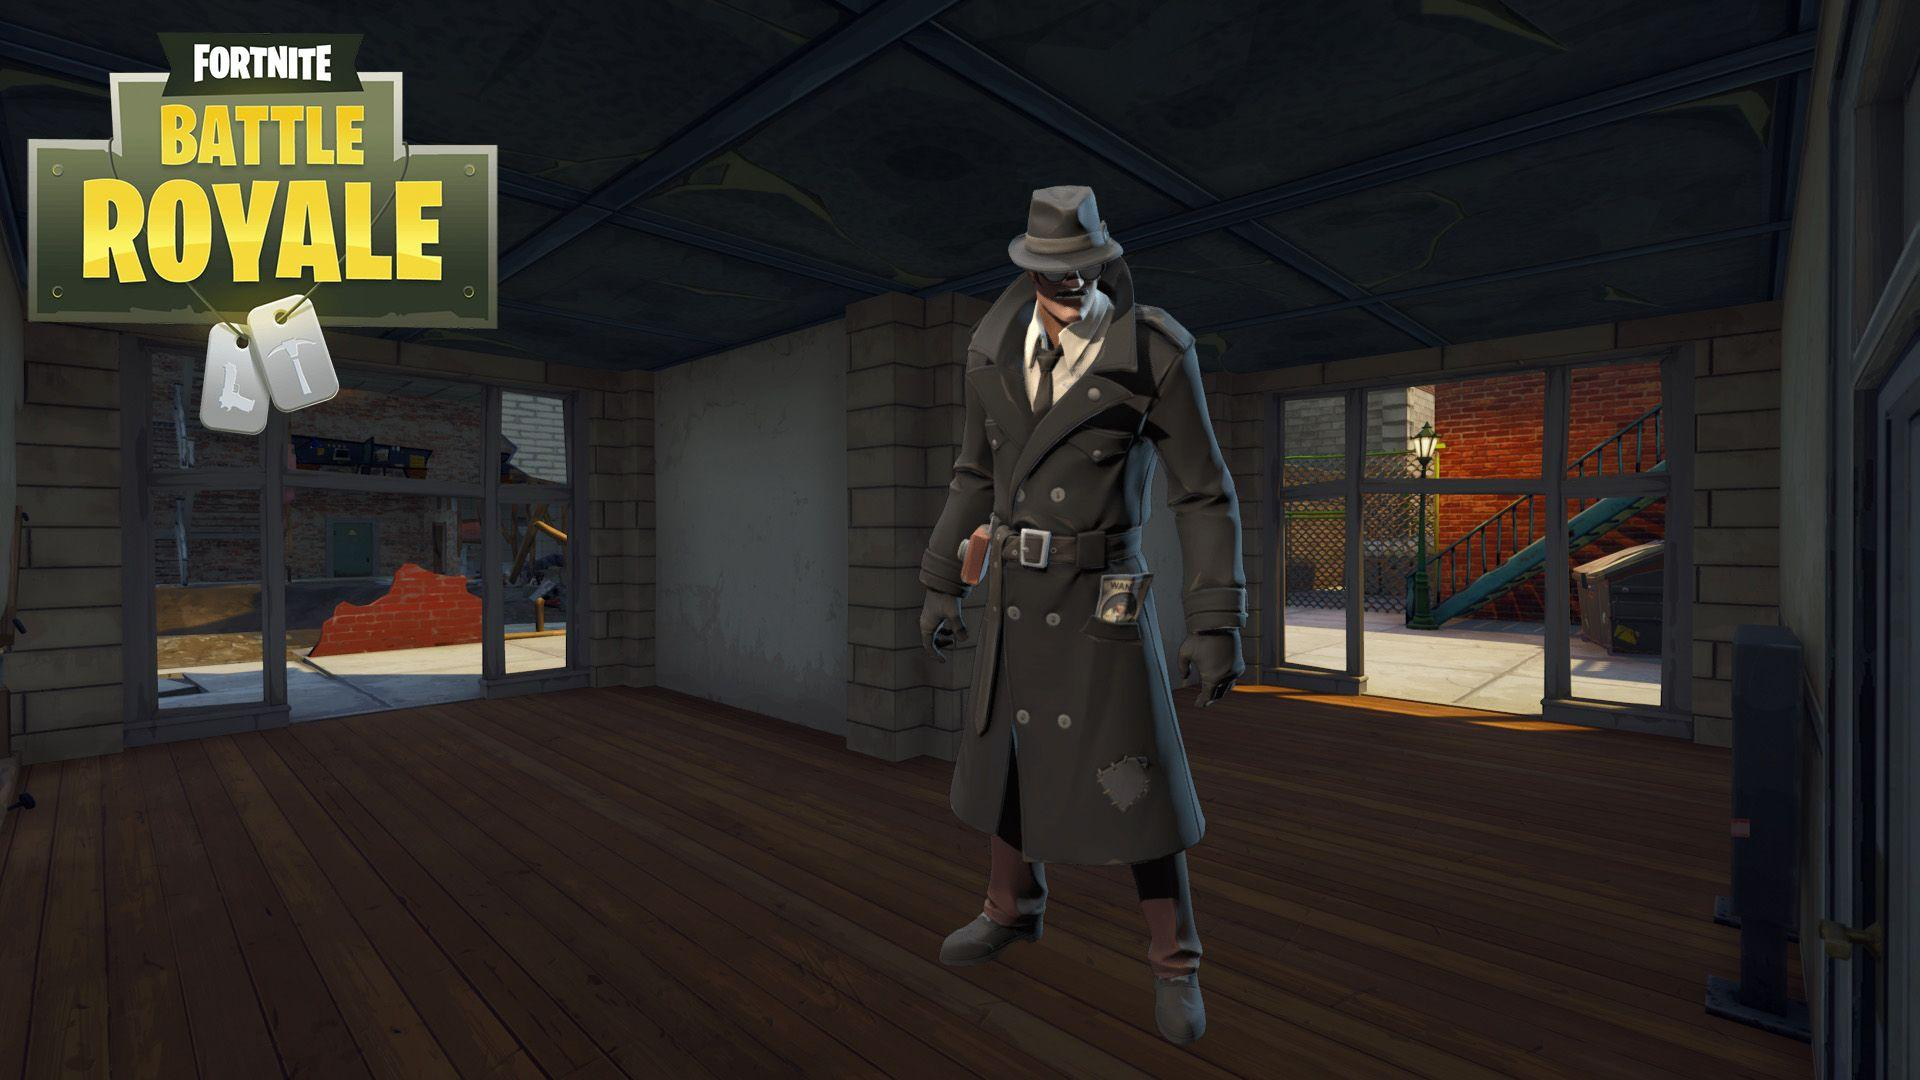 Noir Fortnite Outfit Skin How to Get + News | Fortnite Watch